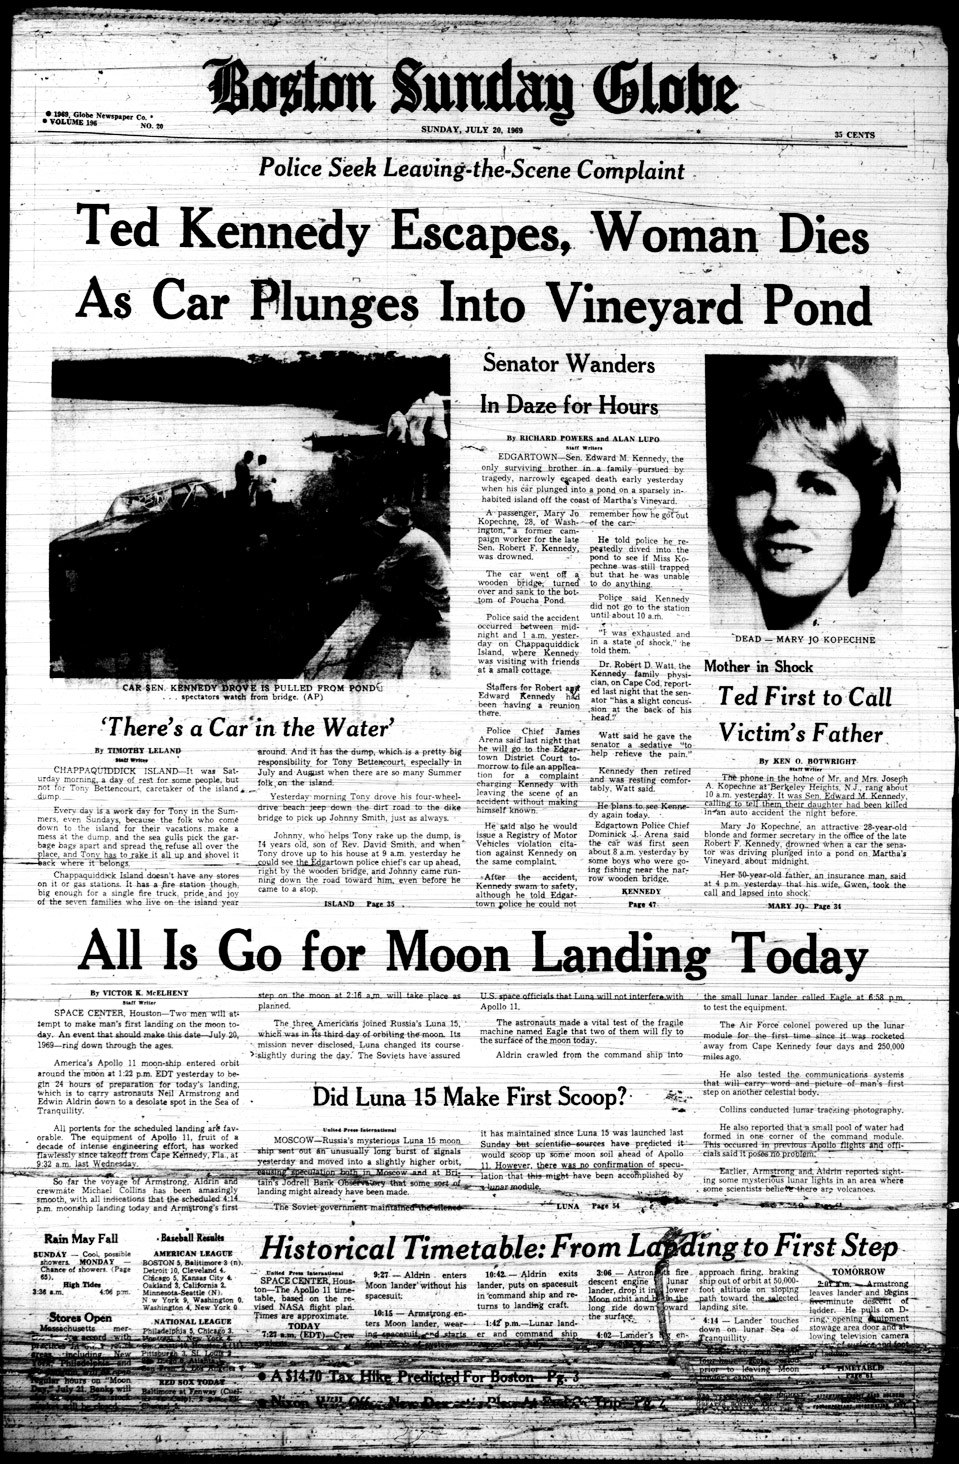 Boston Globe front page: 'Ted Kennedy Escapes, Woman Dies As Car Plunges Into Vineyard Pond'